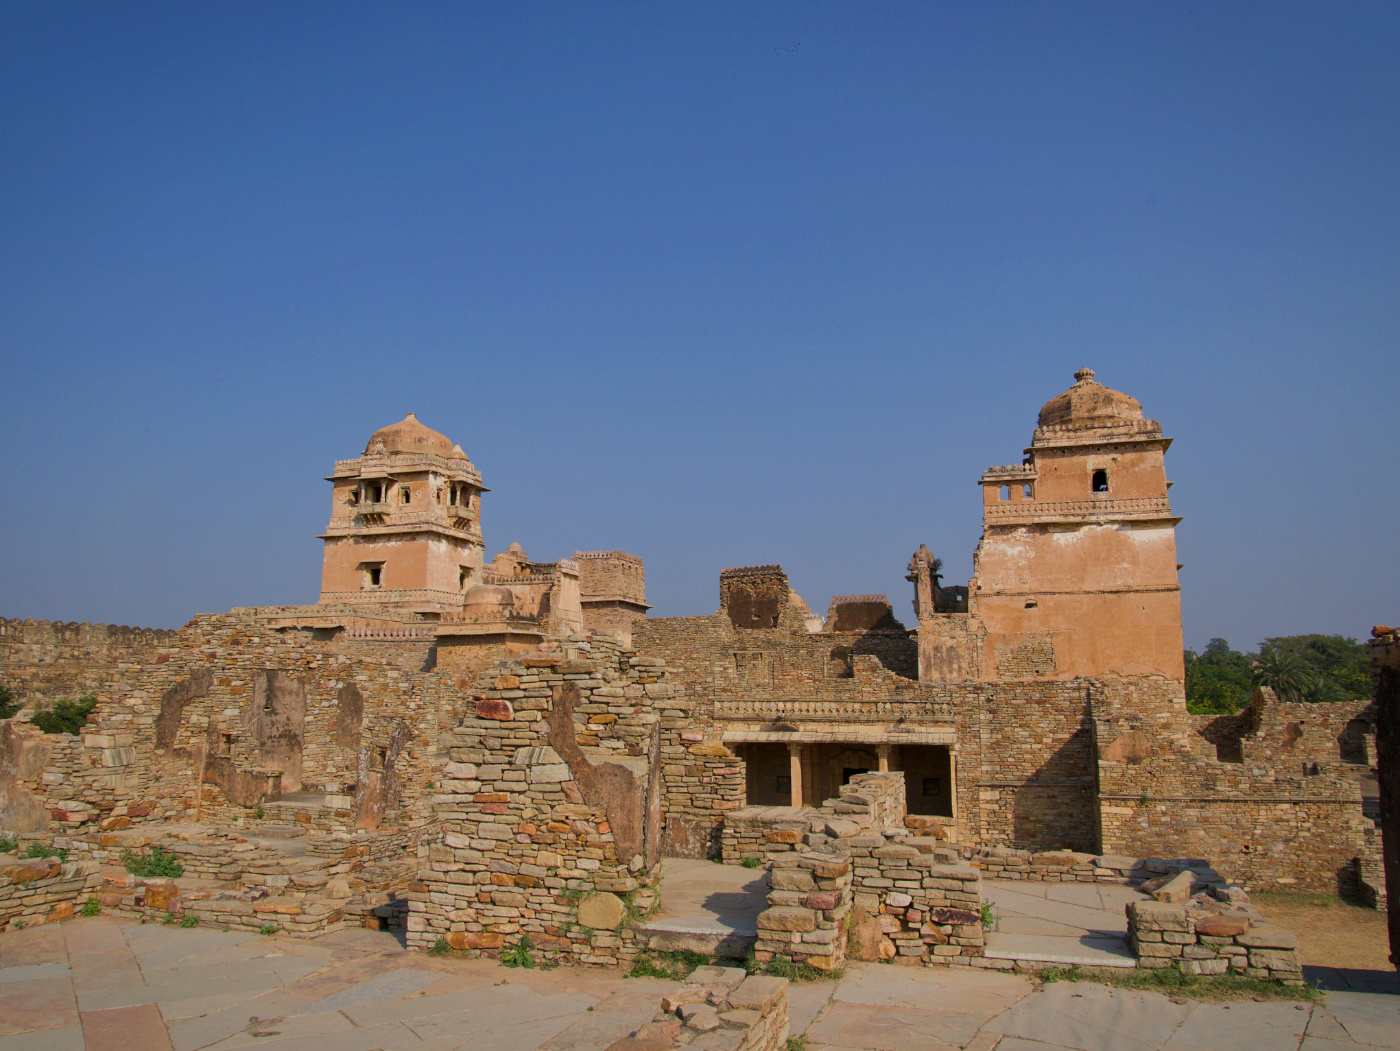 687-India-Chittorgarh